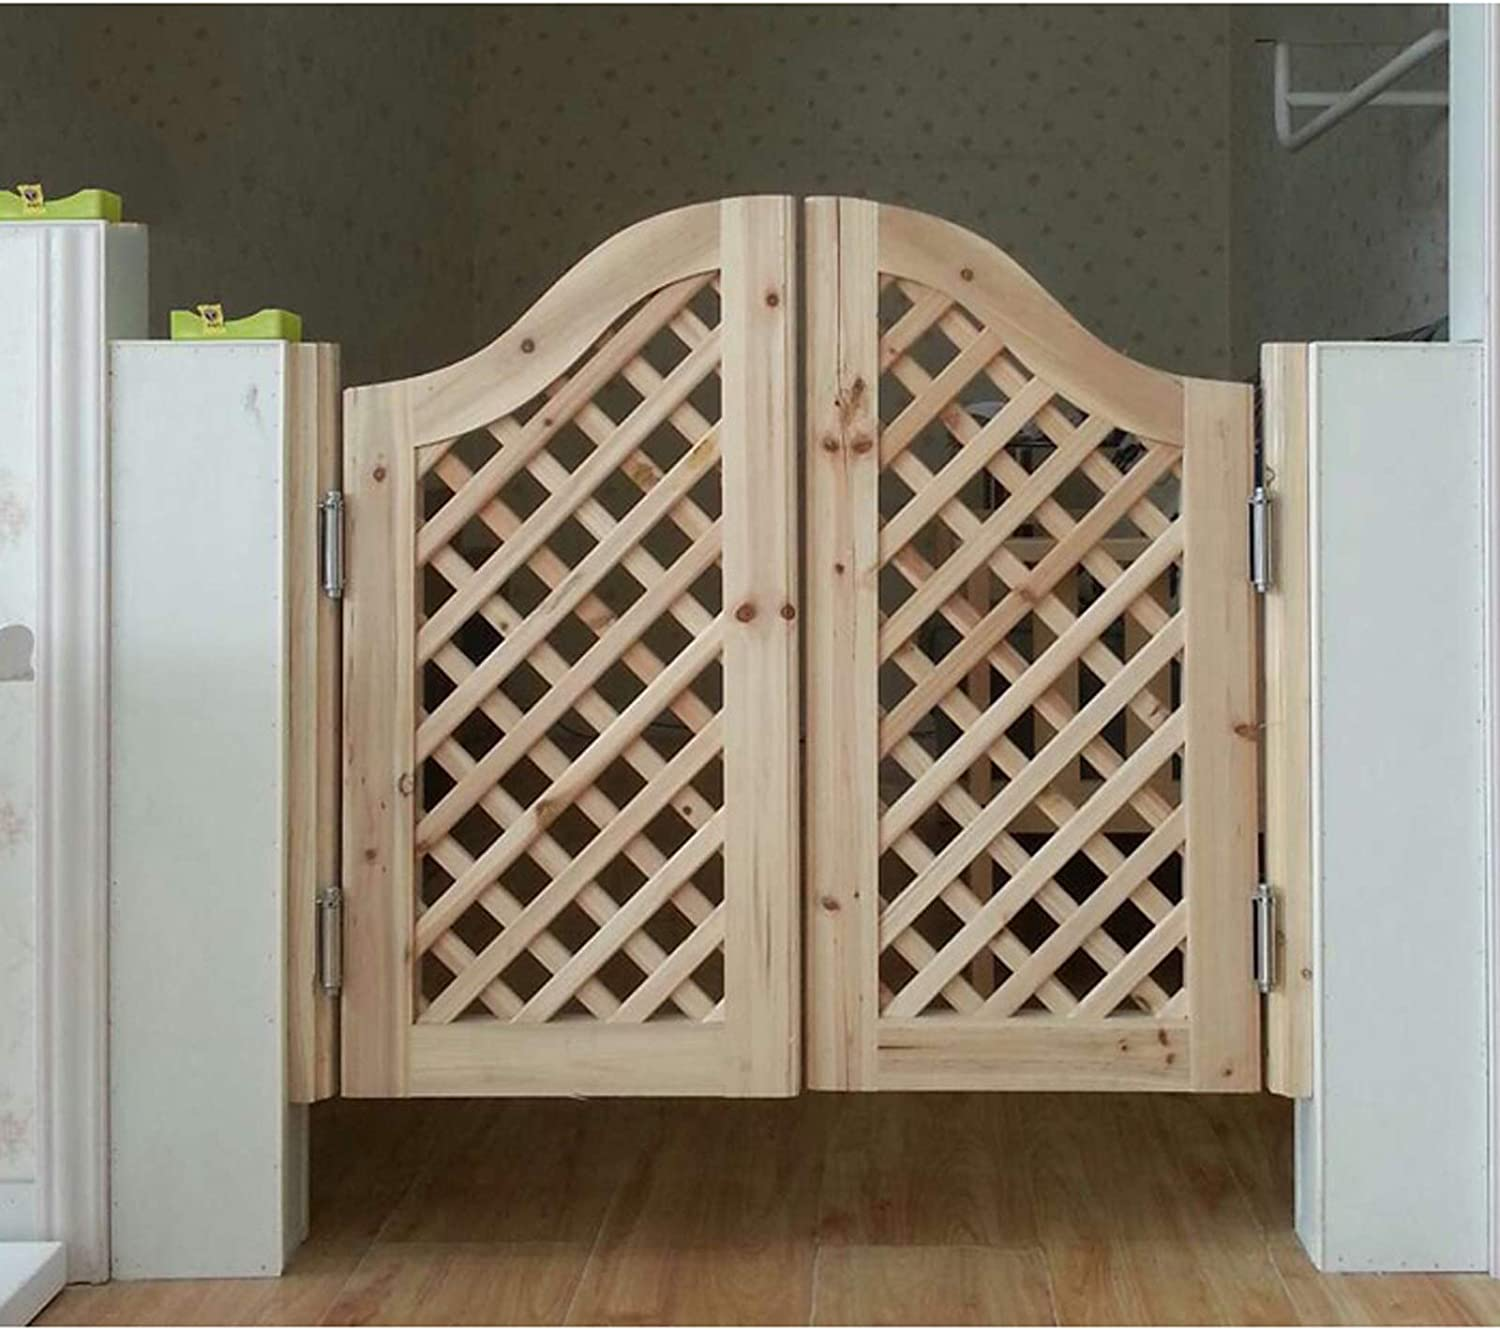 Saloon Cafe Swinging Doors Max 89% OFF Solid E Patio Special price for a limited time Batwing Bar Wood